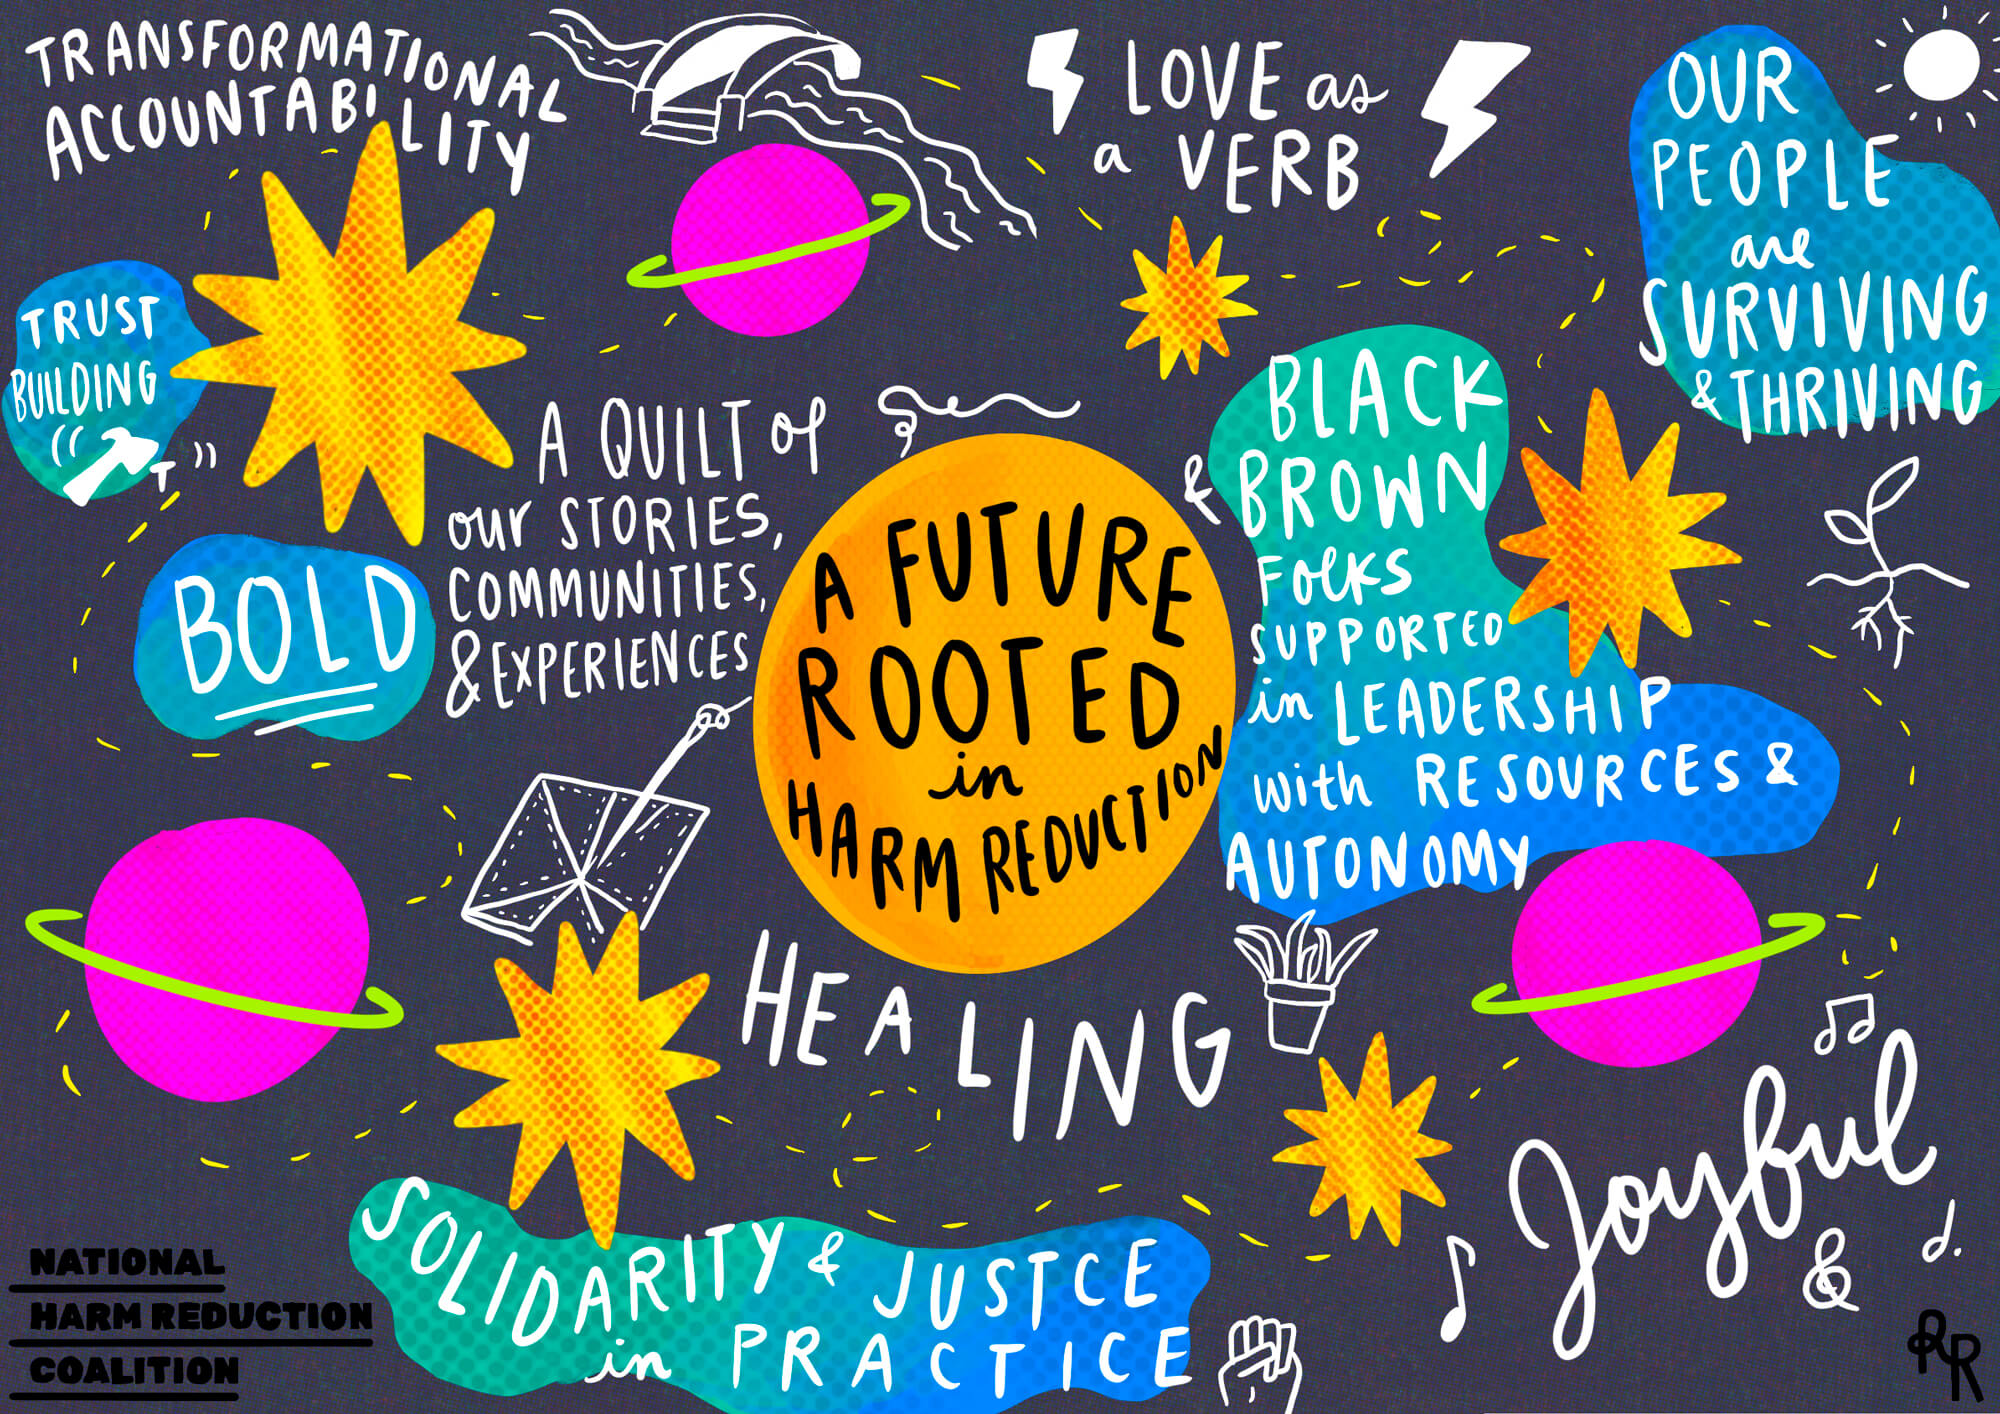 """An illustration with responses to the question, """"what would a future rooted in harm reduction look like?"""" Some answers include joyful, our people surviving and thriving, healing, bold, solidarity and justice in practice, love as a verb"""